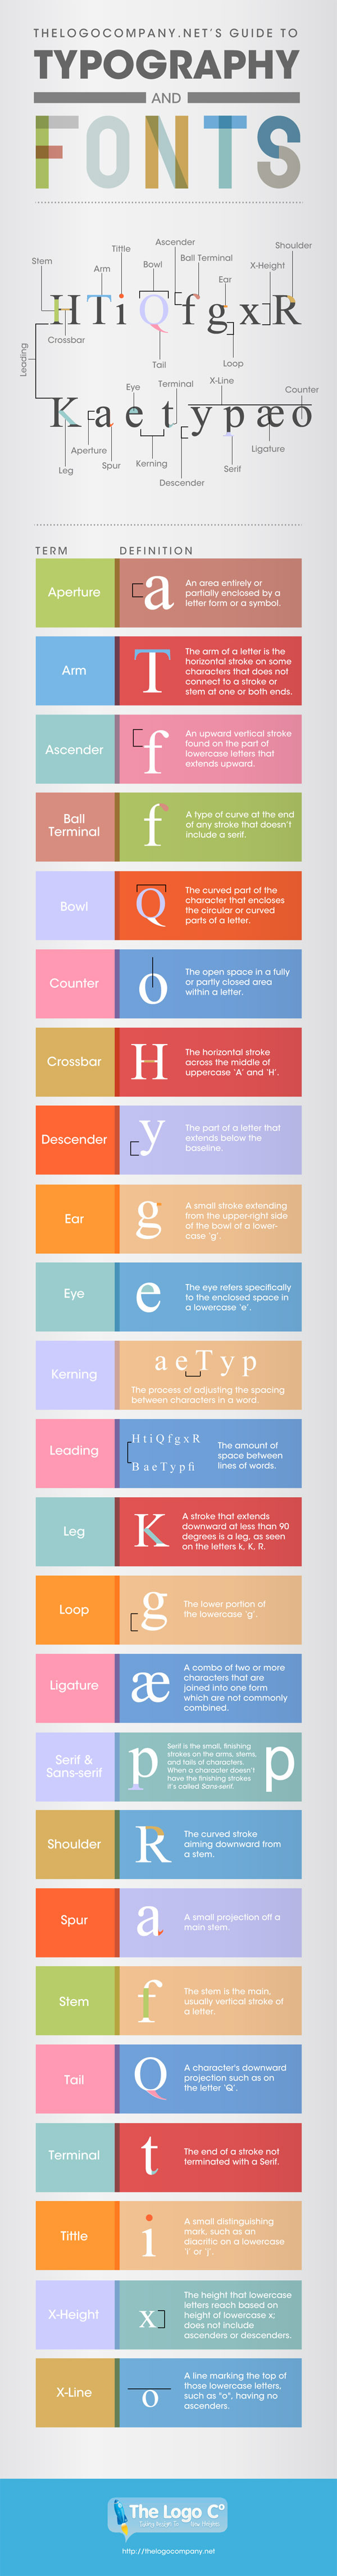 The Ultimate Guide to Typography and Font [Infographic] - Smashfreakz